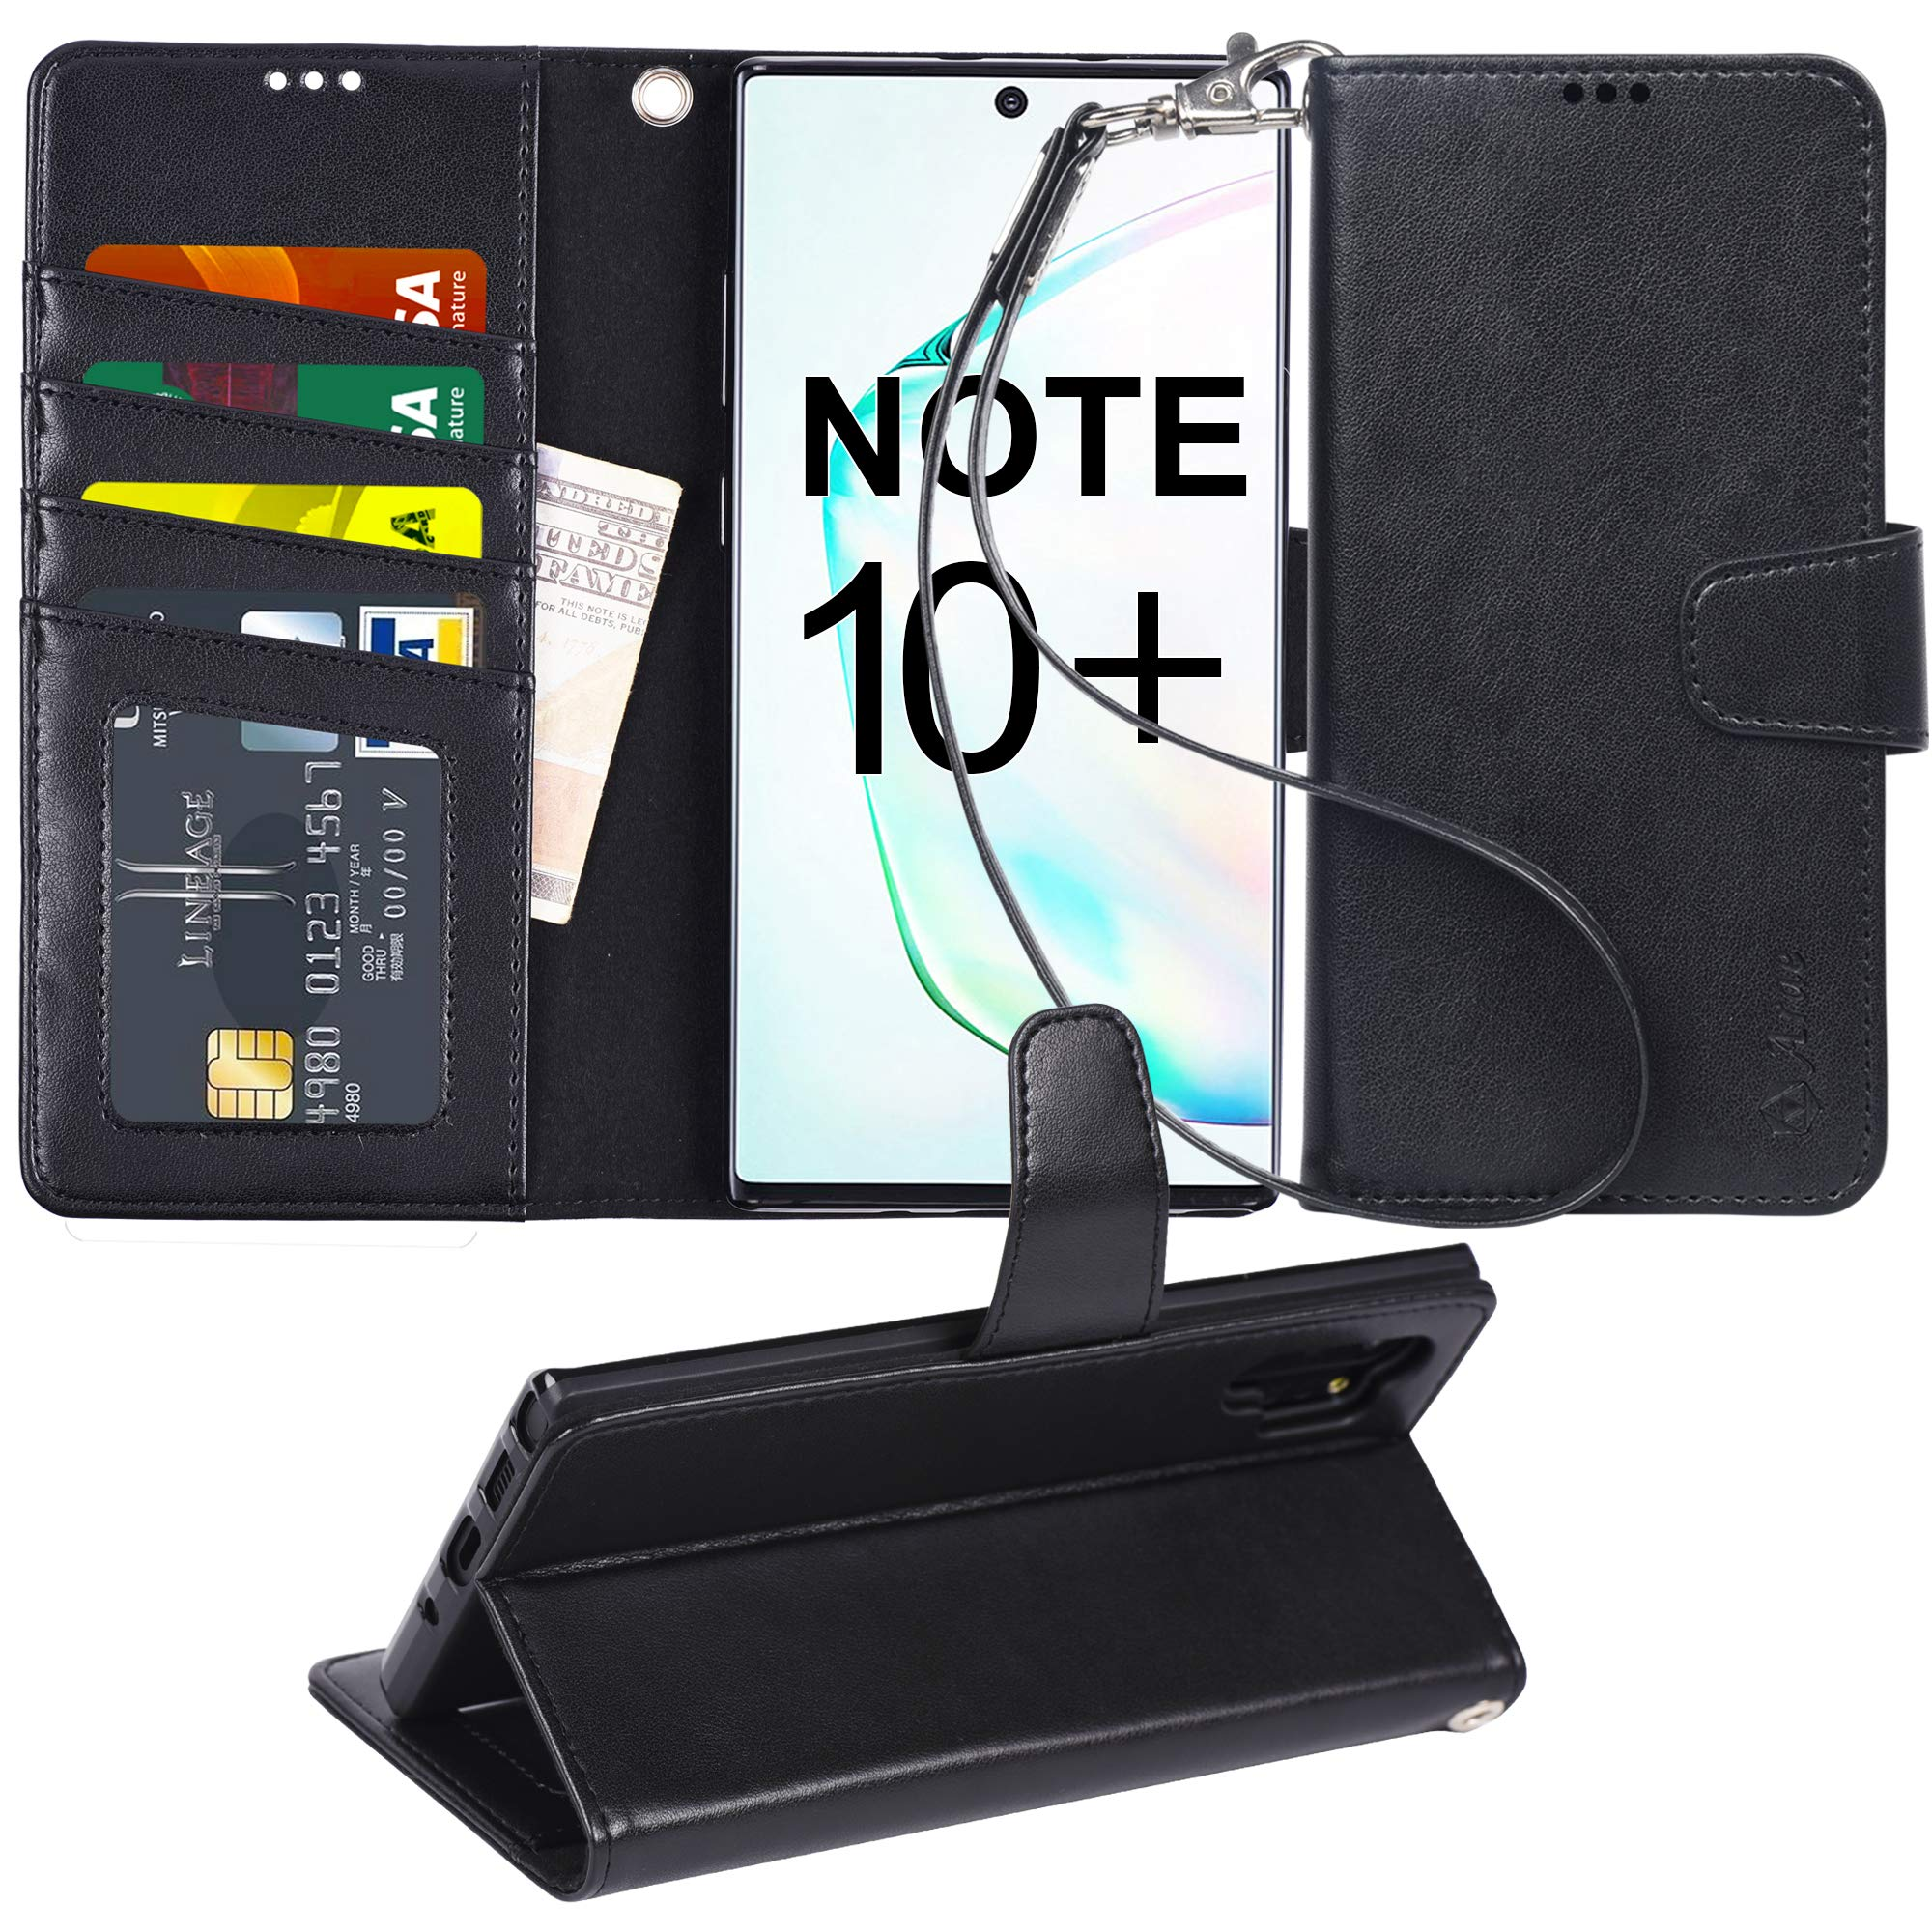 Arae Wallet Case for Samsung Galaxy Note 10 Plus/Note 10 Plus 5G PU Leather flip Cover [Stand Feature] with ID&Credit Cards Pocket for Galaxy Note 10+ / Note 10+ 5G 6.8 inch, Black by Arae